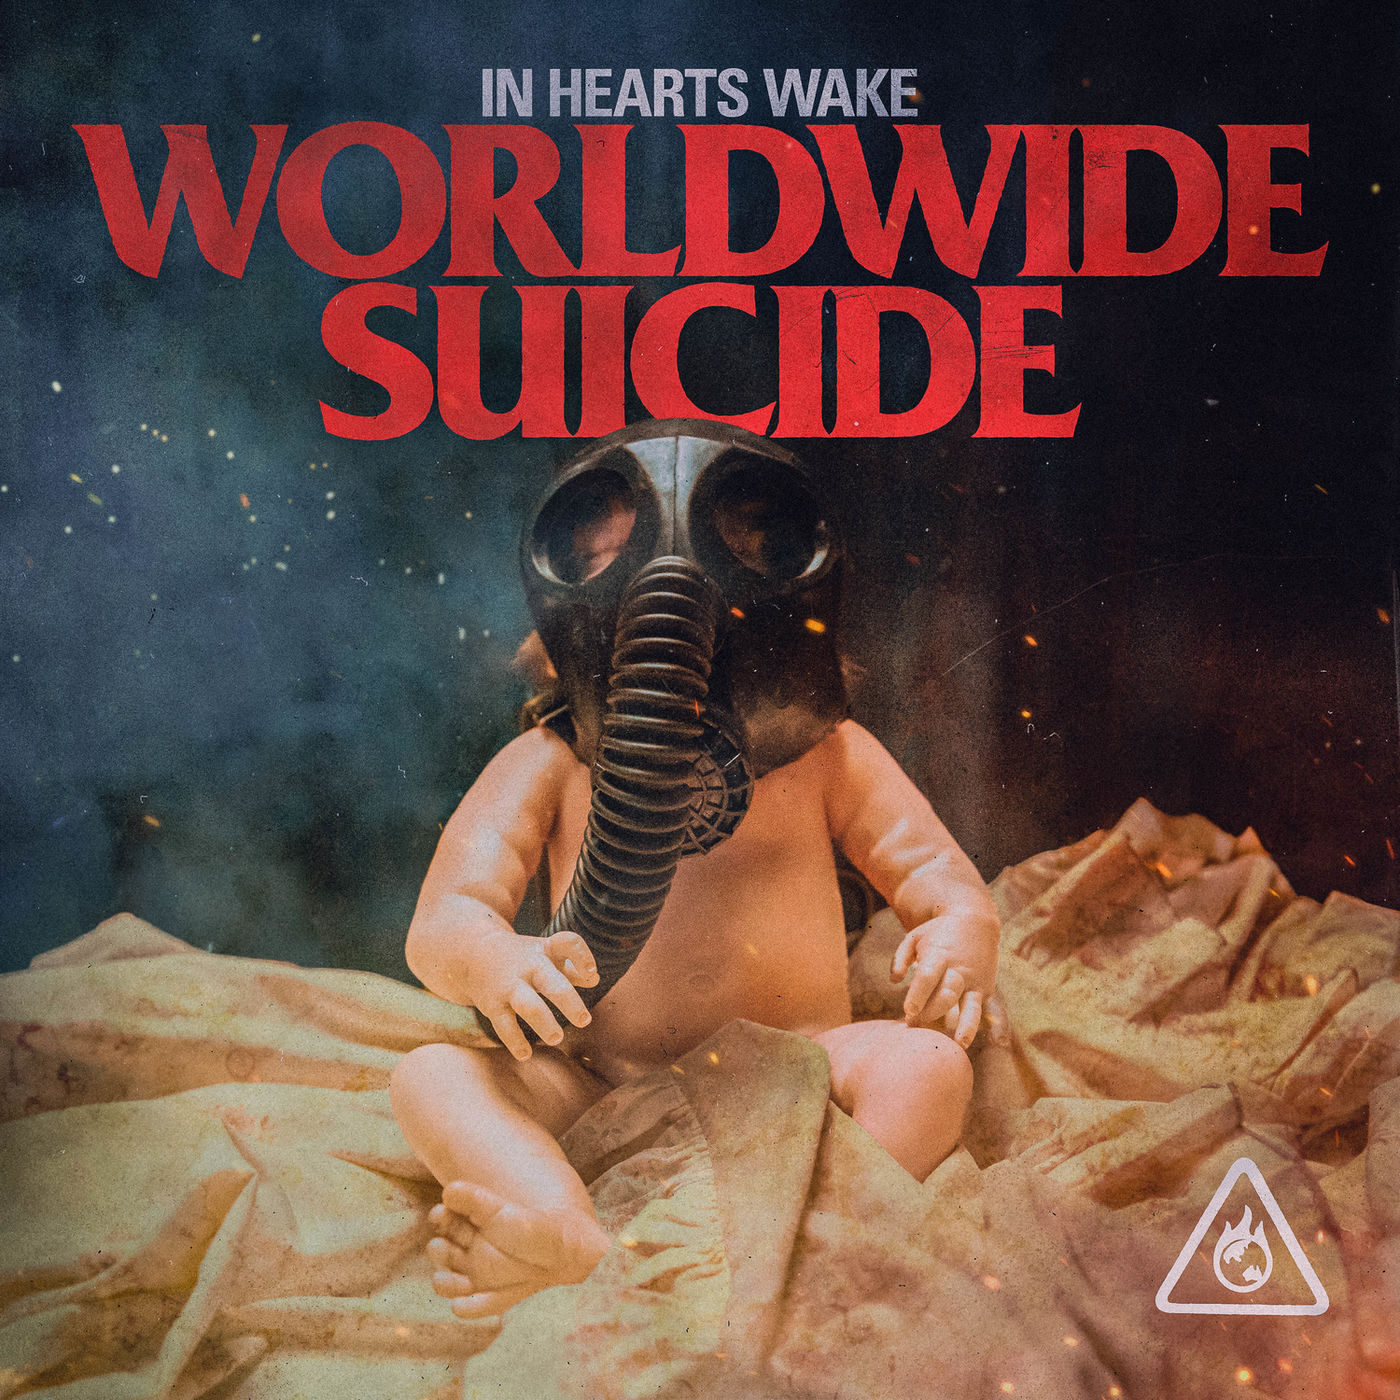 In Hearts Wake - Worldwide Suicide [single] (2020)